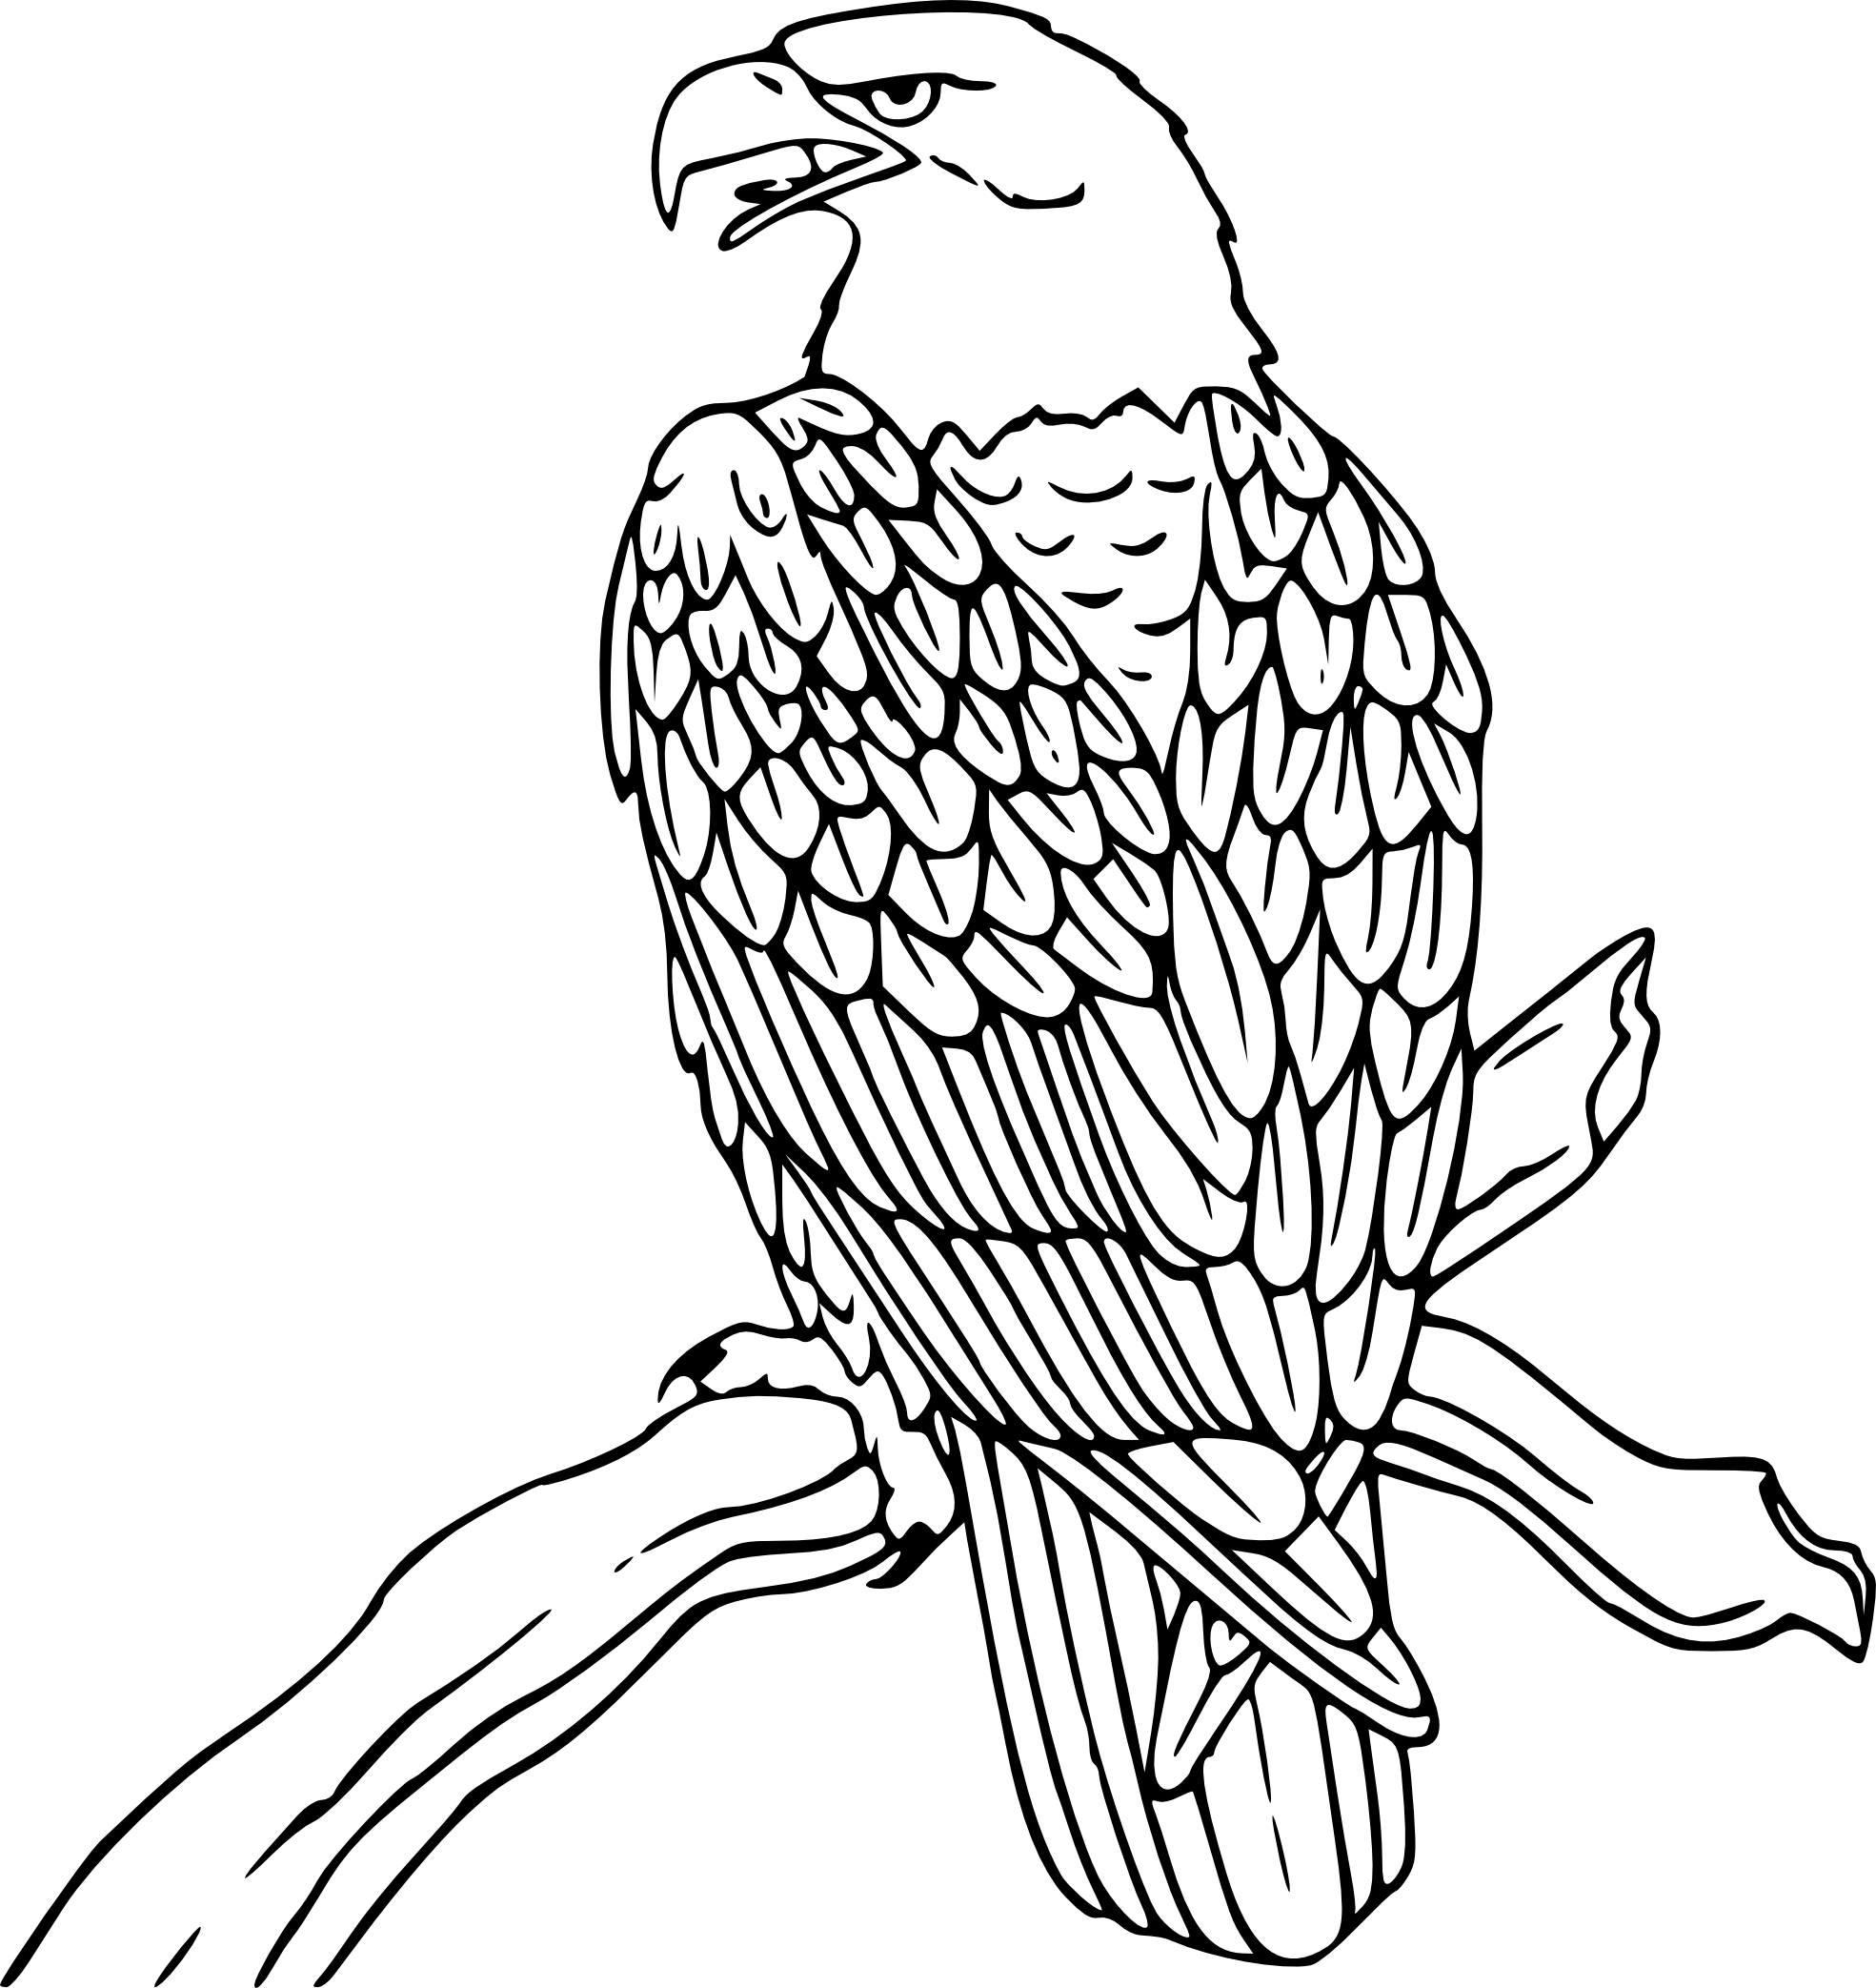 American bald eagle clipart black and white banner black and white stock Black And White Bald Eagle Clipart banner black and white stock